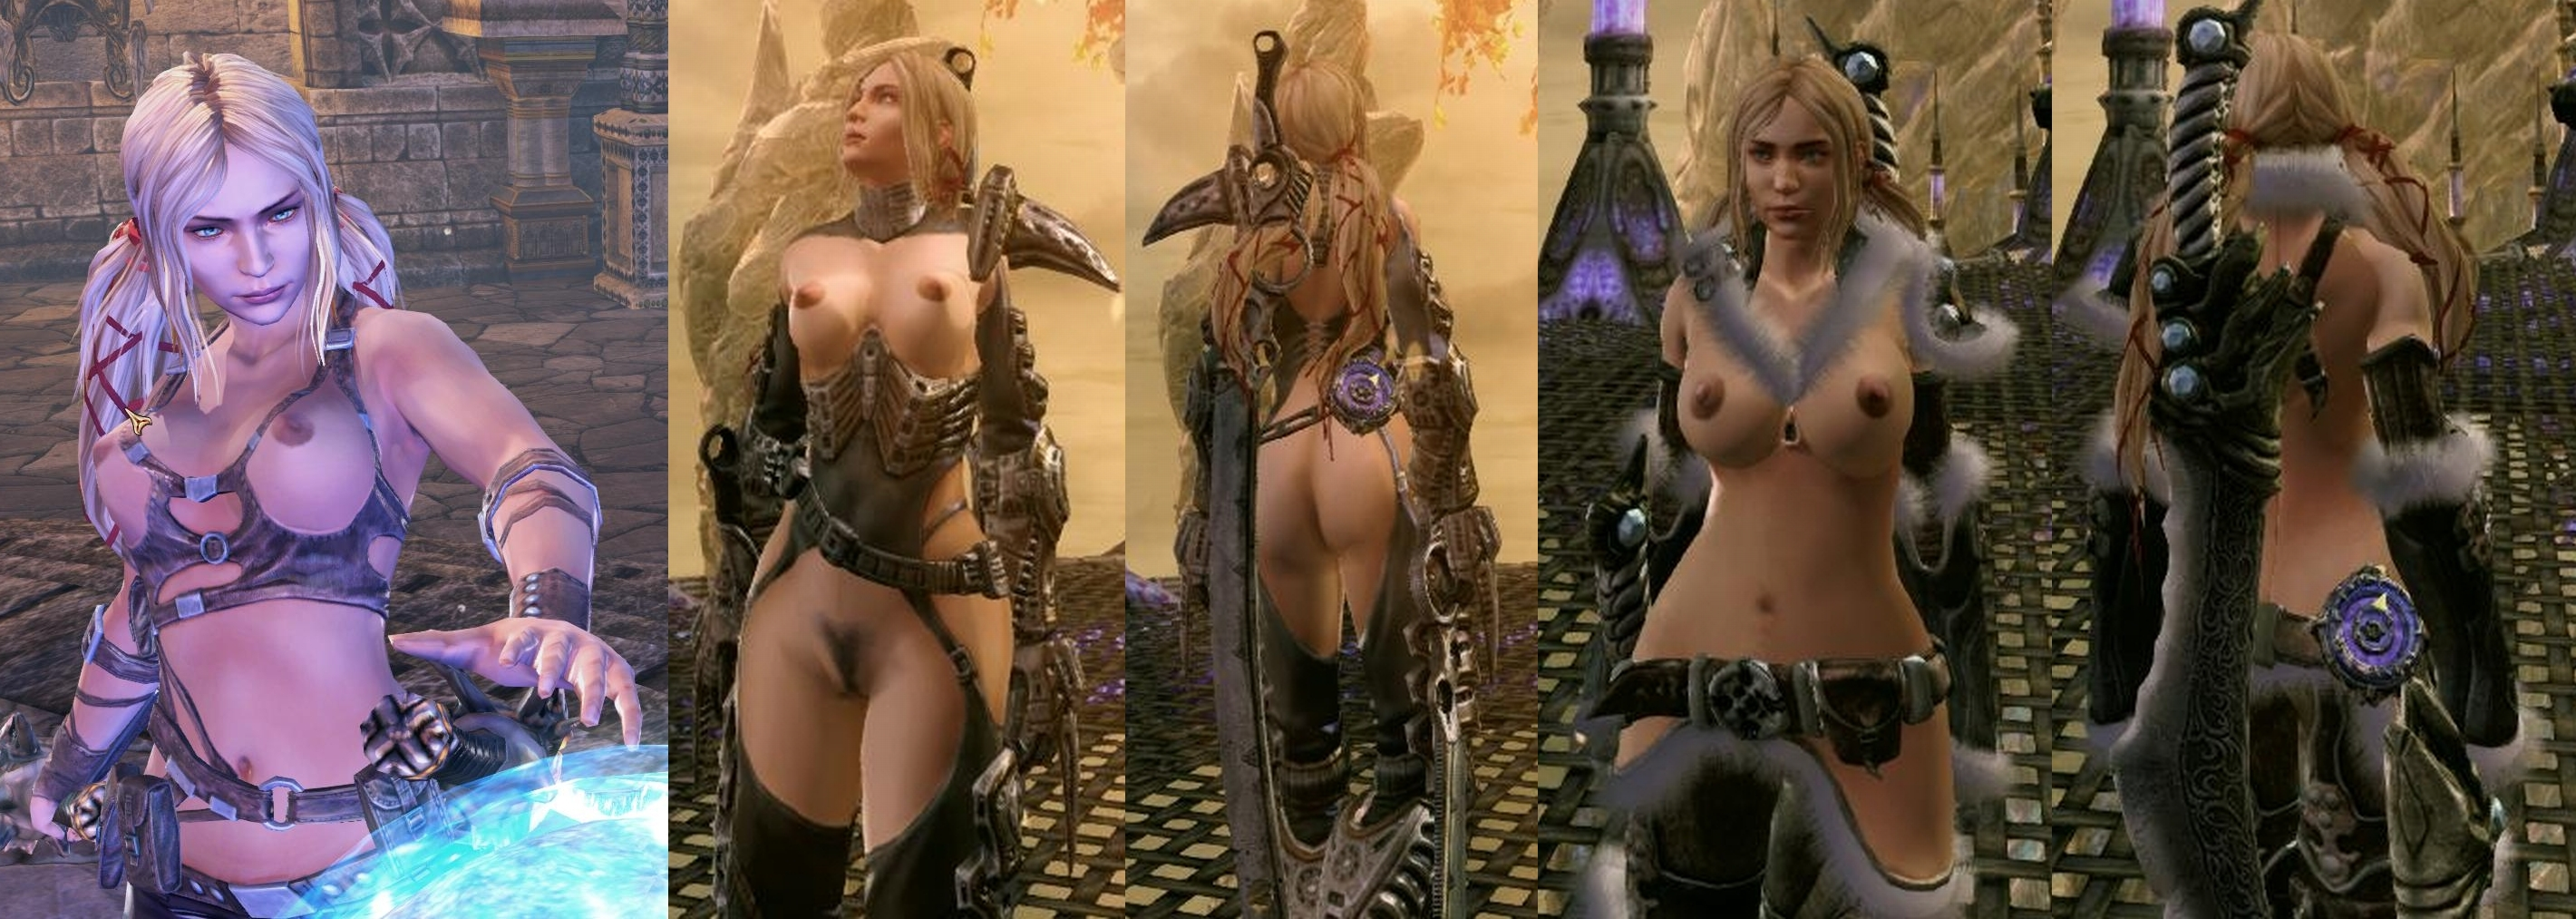 Blade of time porn video sexy picture